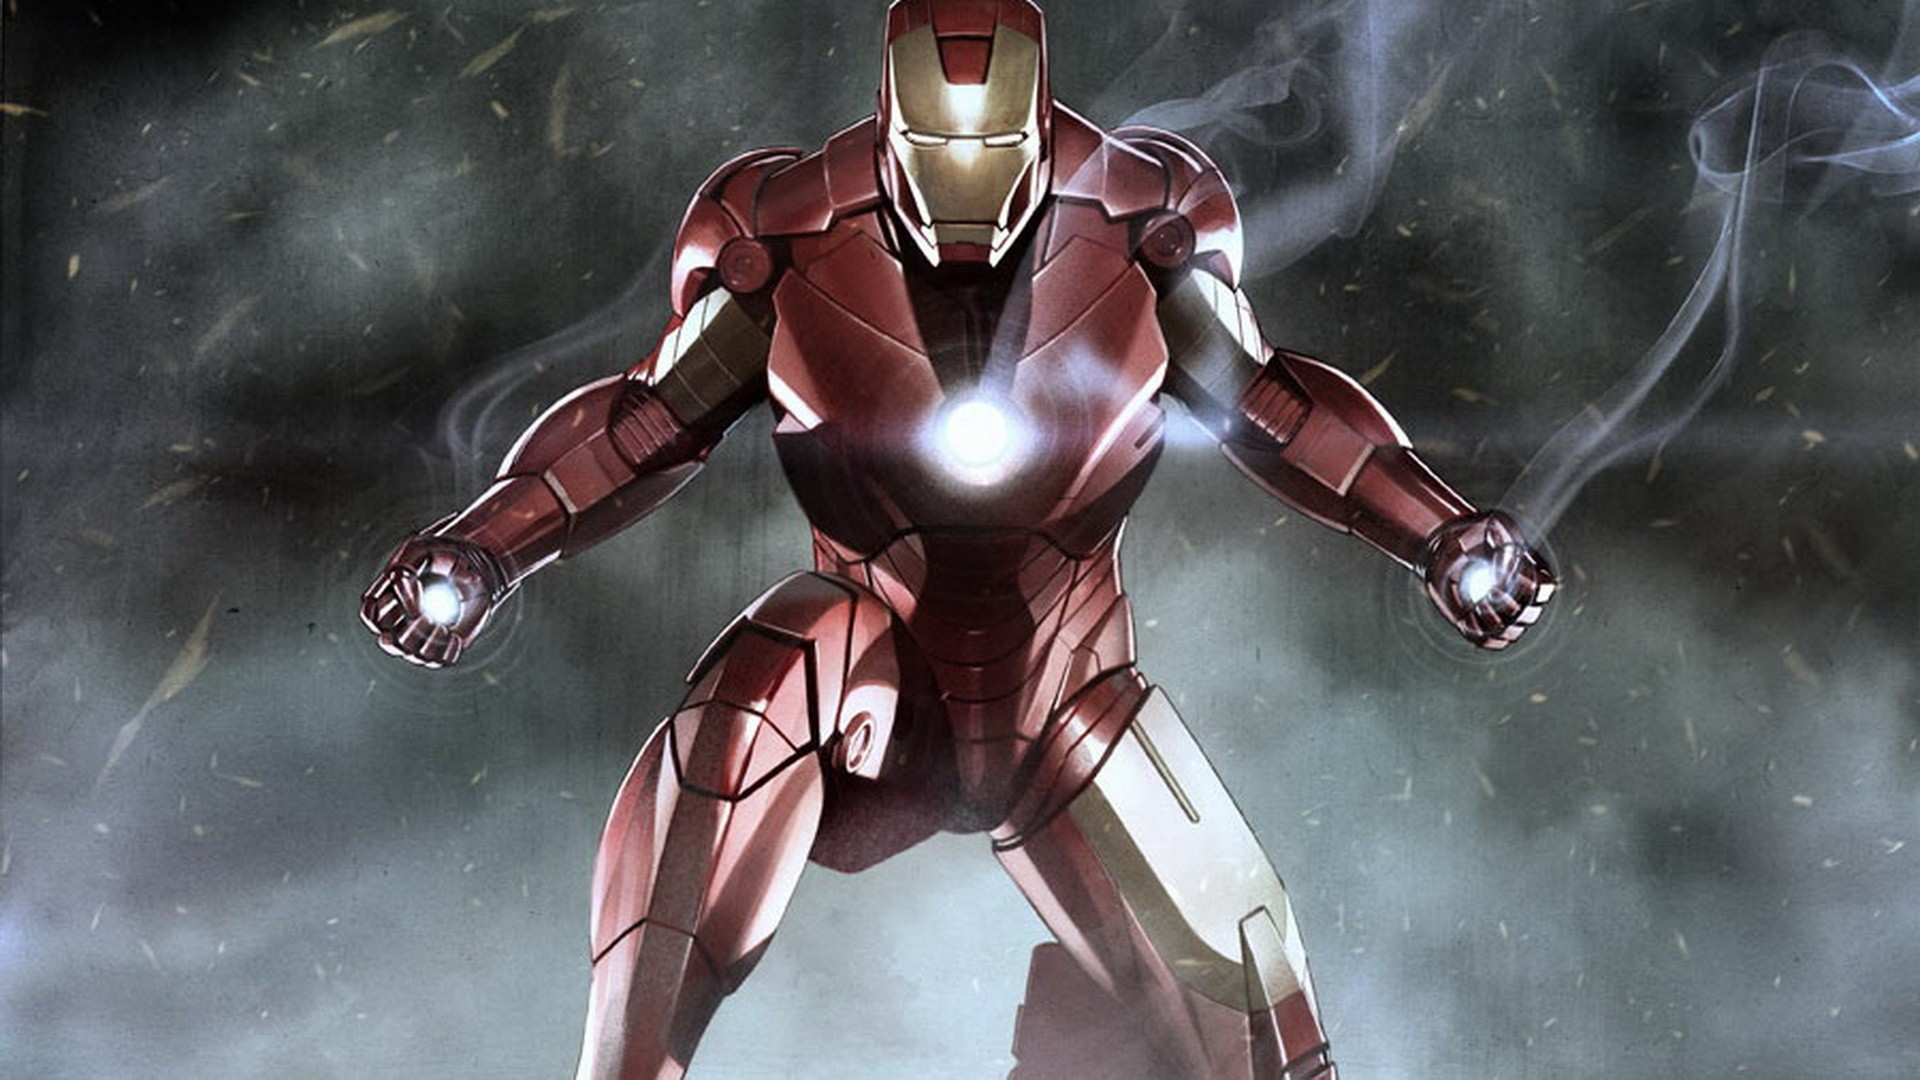 … Iron Man HD Wallpapers | Page 2